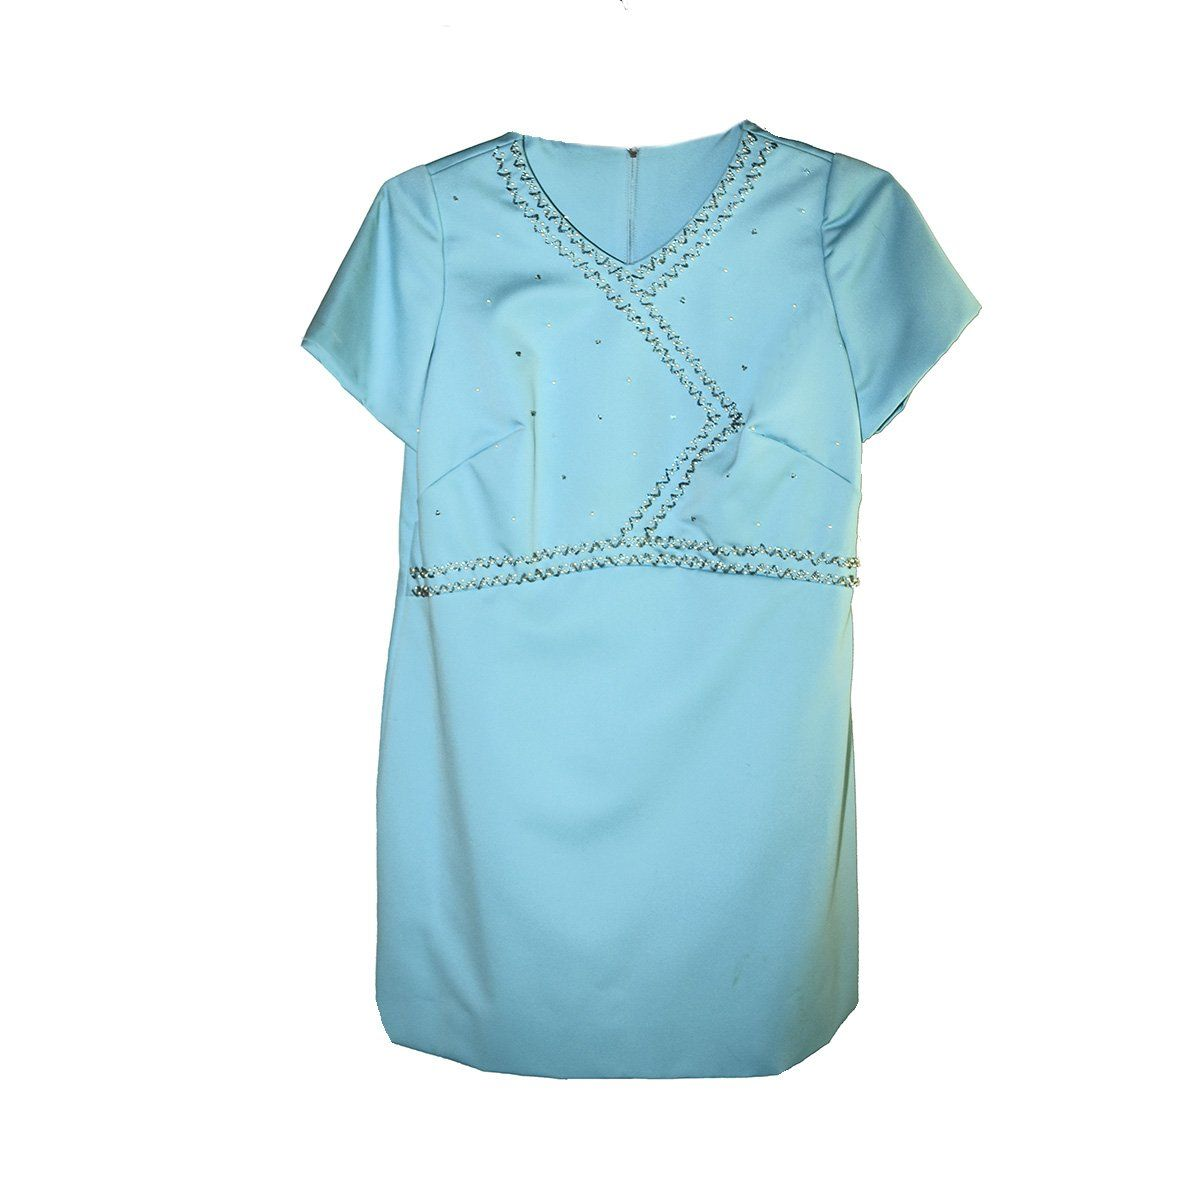 Aqua Blue Mini Dress 2 with Decorative Beading